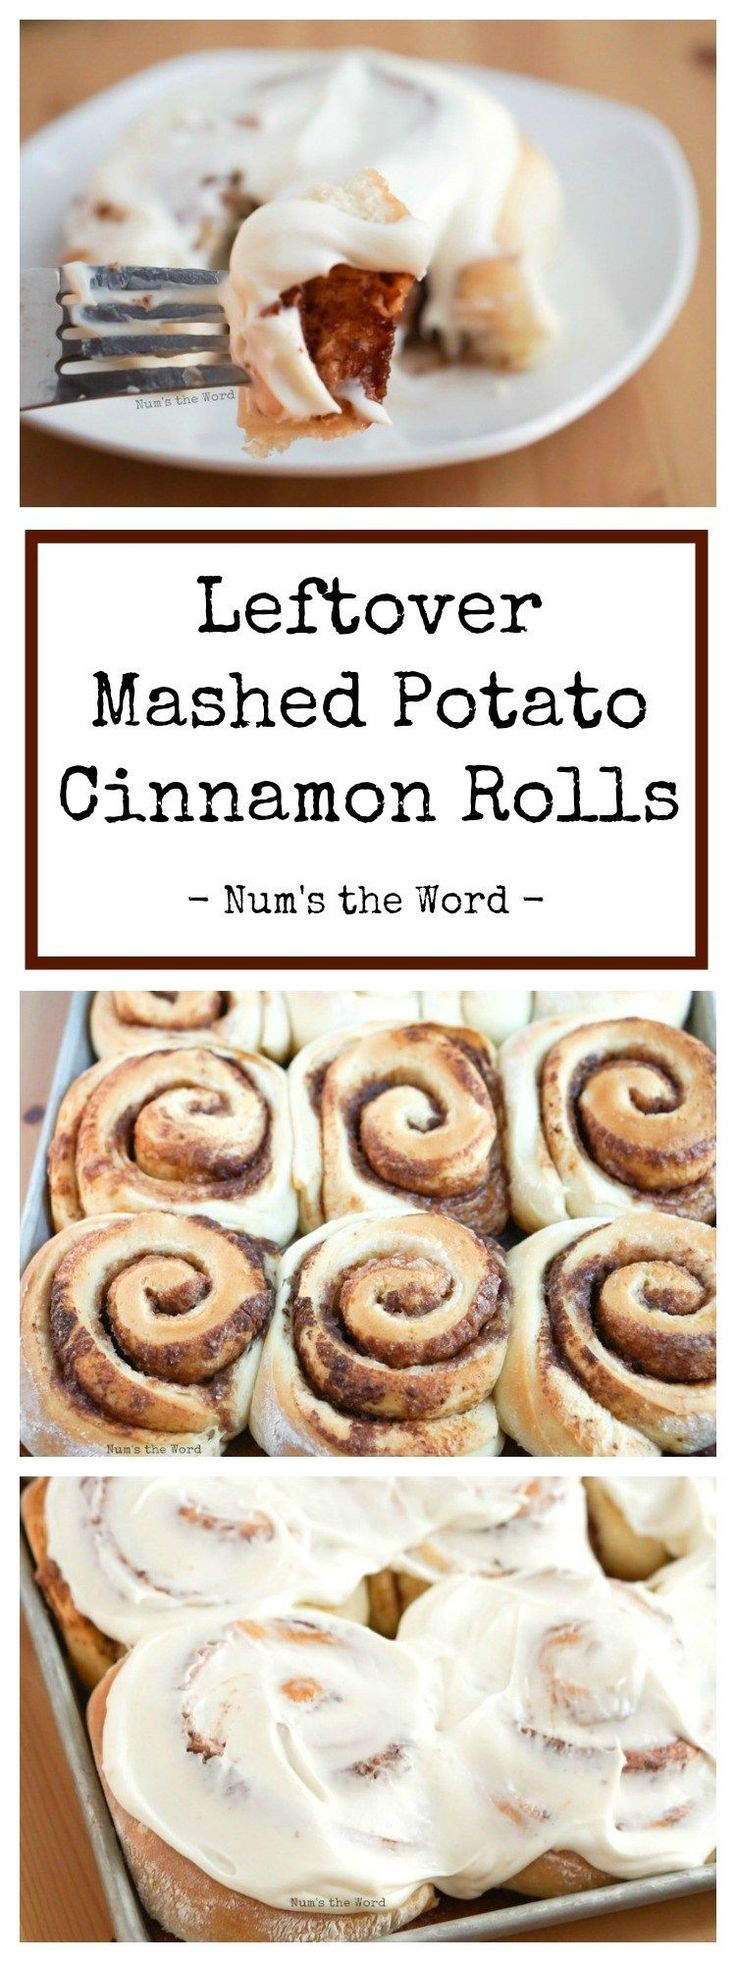 These Leftover Mashed Potato Cinnamon Rolls are the absolute best! You can't taste the mashed potatoes at all. Sweet, easy and the perfect way to use up leftover mashed potatoes! #cinnamonrolls #potatorolls #potatobread #mashedpotatoes #leftovers #leftovermashedpotatoes #thanksgiving #christmas #easter #breakfast #dessert #creamcheesefrosting #creamcheese #cinnamon #sugar #easyrecipe #recipe #numstheword